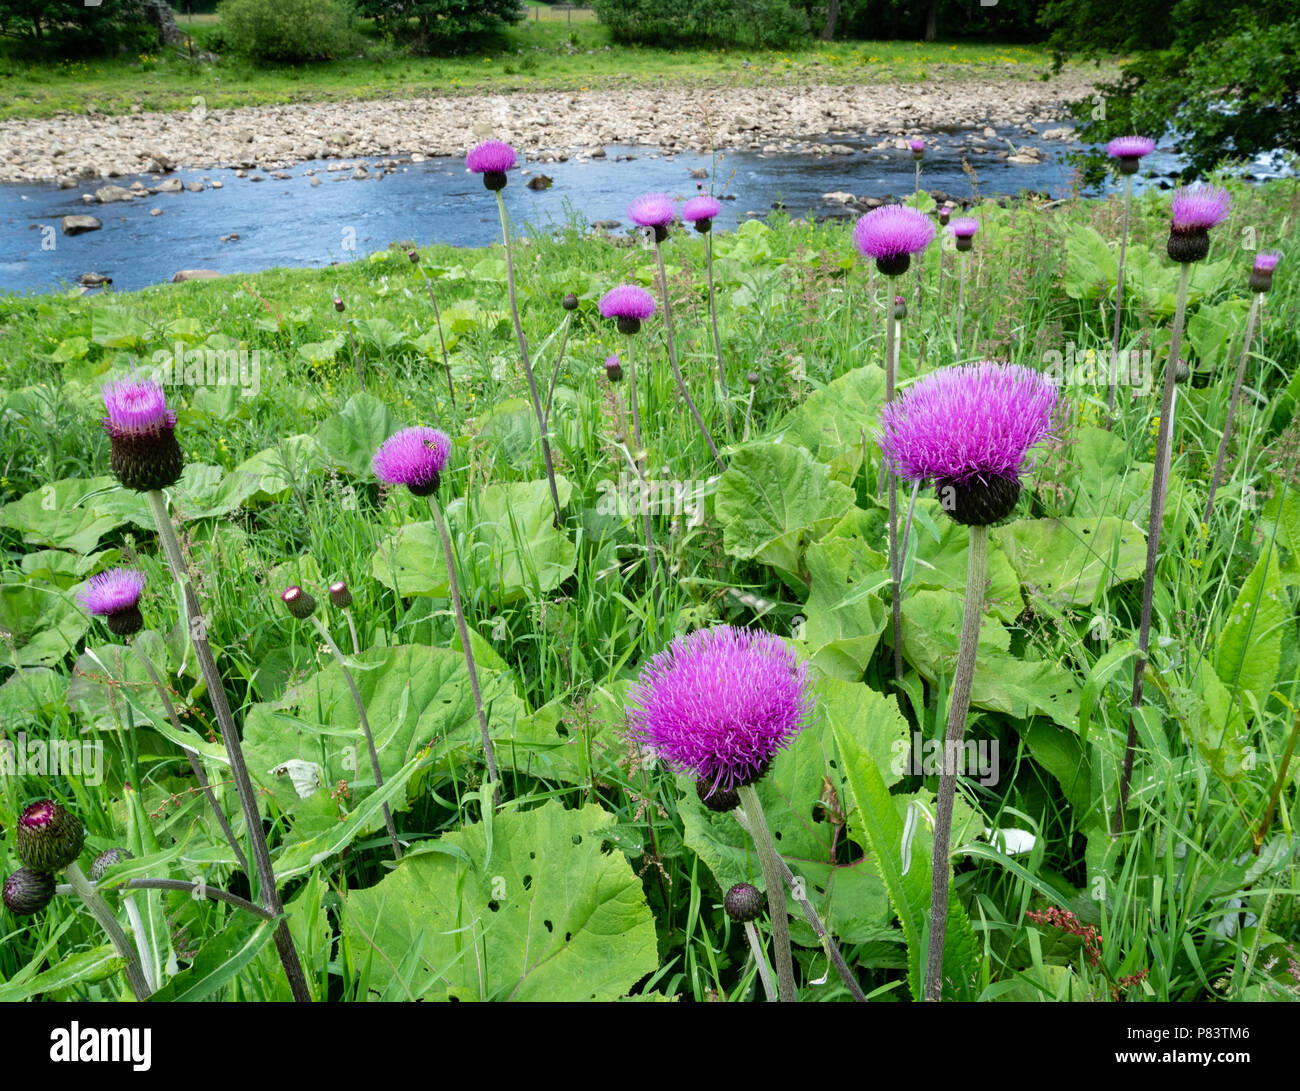 Colony of the handsome melancholy thistle Cirsium heterophyllum in damp ground on the banks of the River Swale in the Yorkshire Dales UK - Stock Image